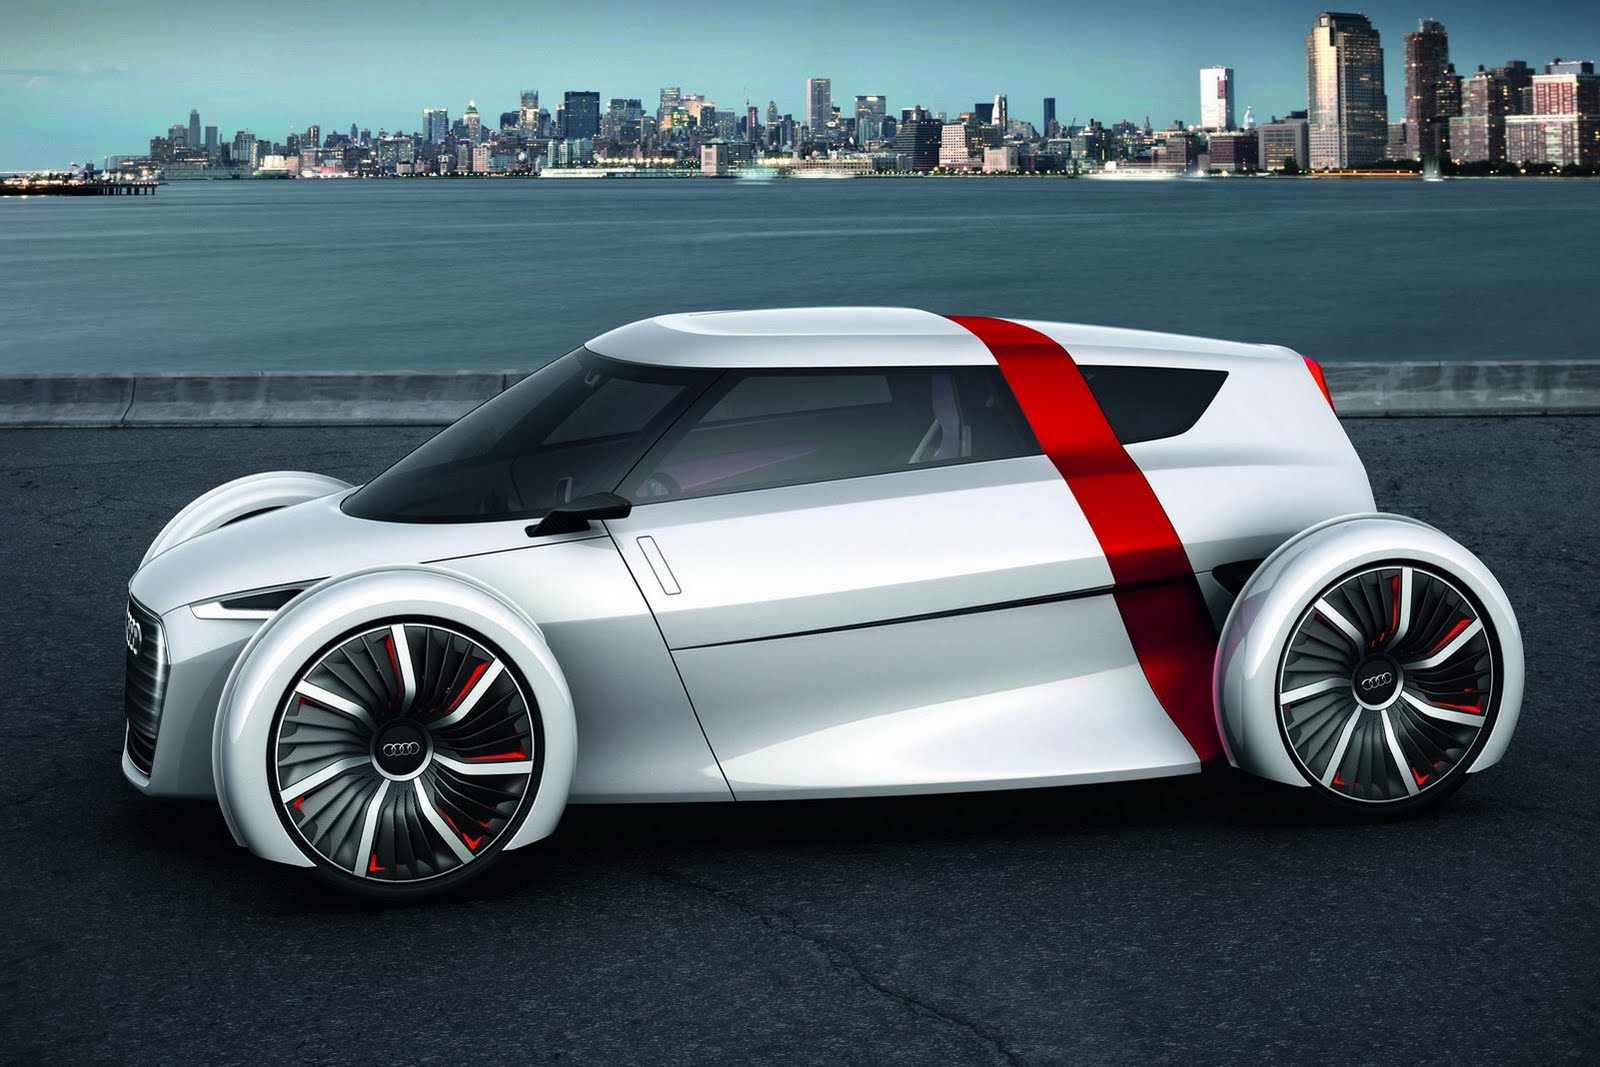 AUDI URBAN SPORTBACK AND SPYDER CONCEPTS 9 AUDI RELEASES NEW IMAGES OF URBAN SPORTBACK AND SPYDER CONCEPTS